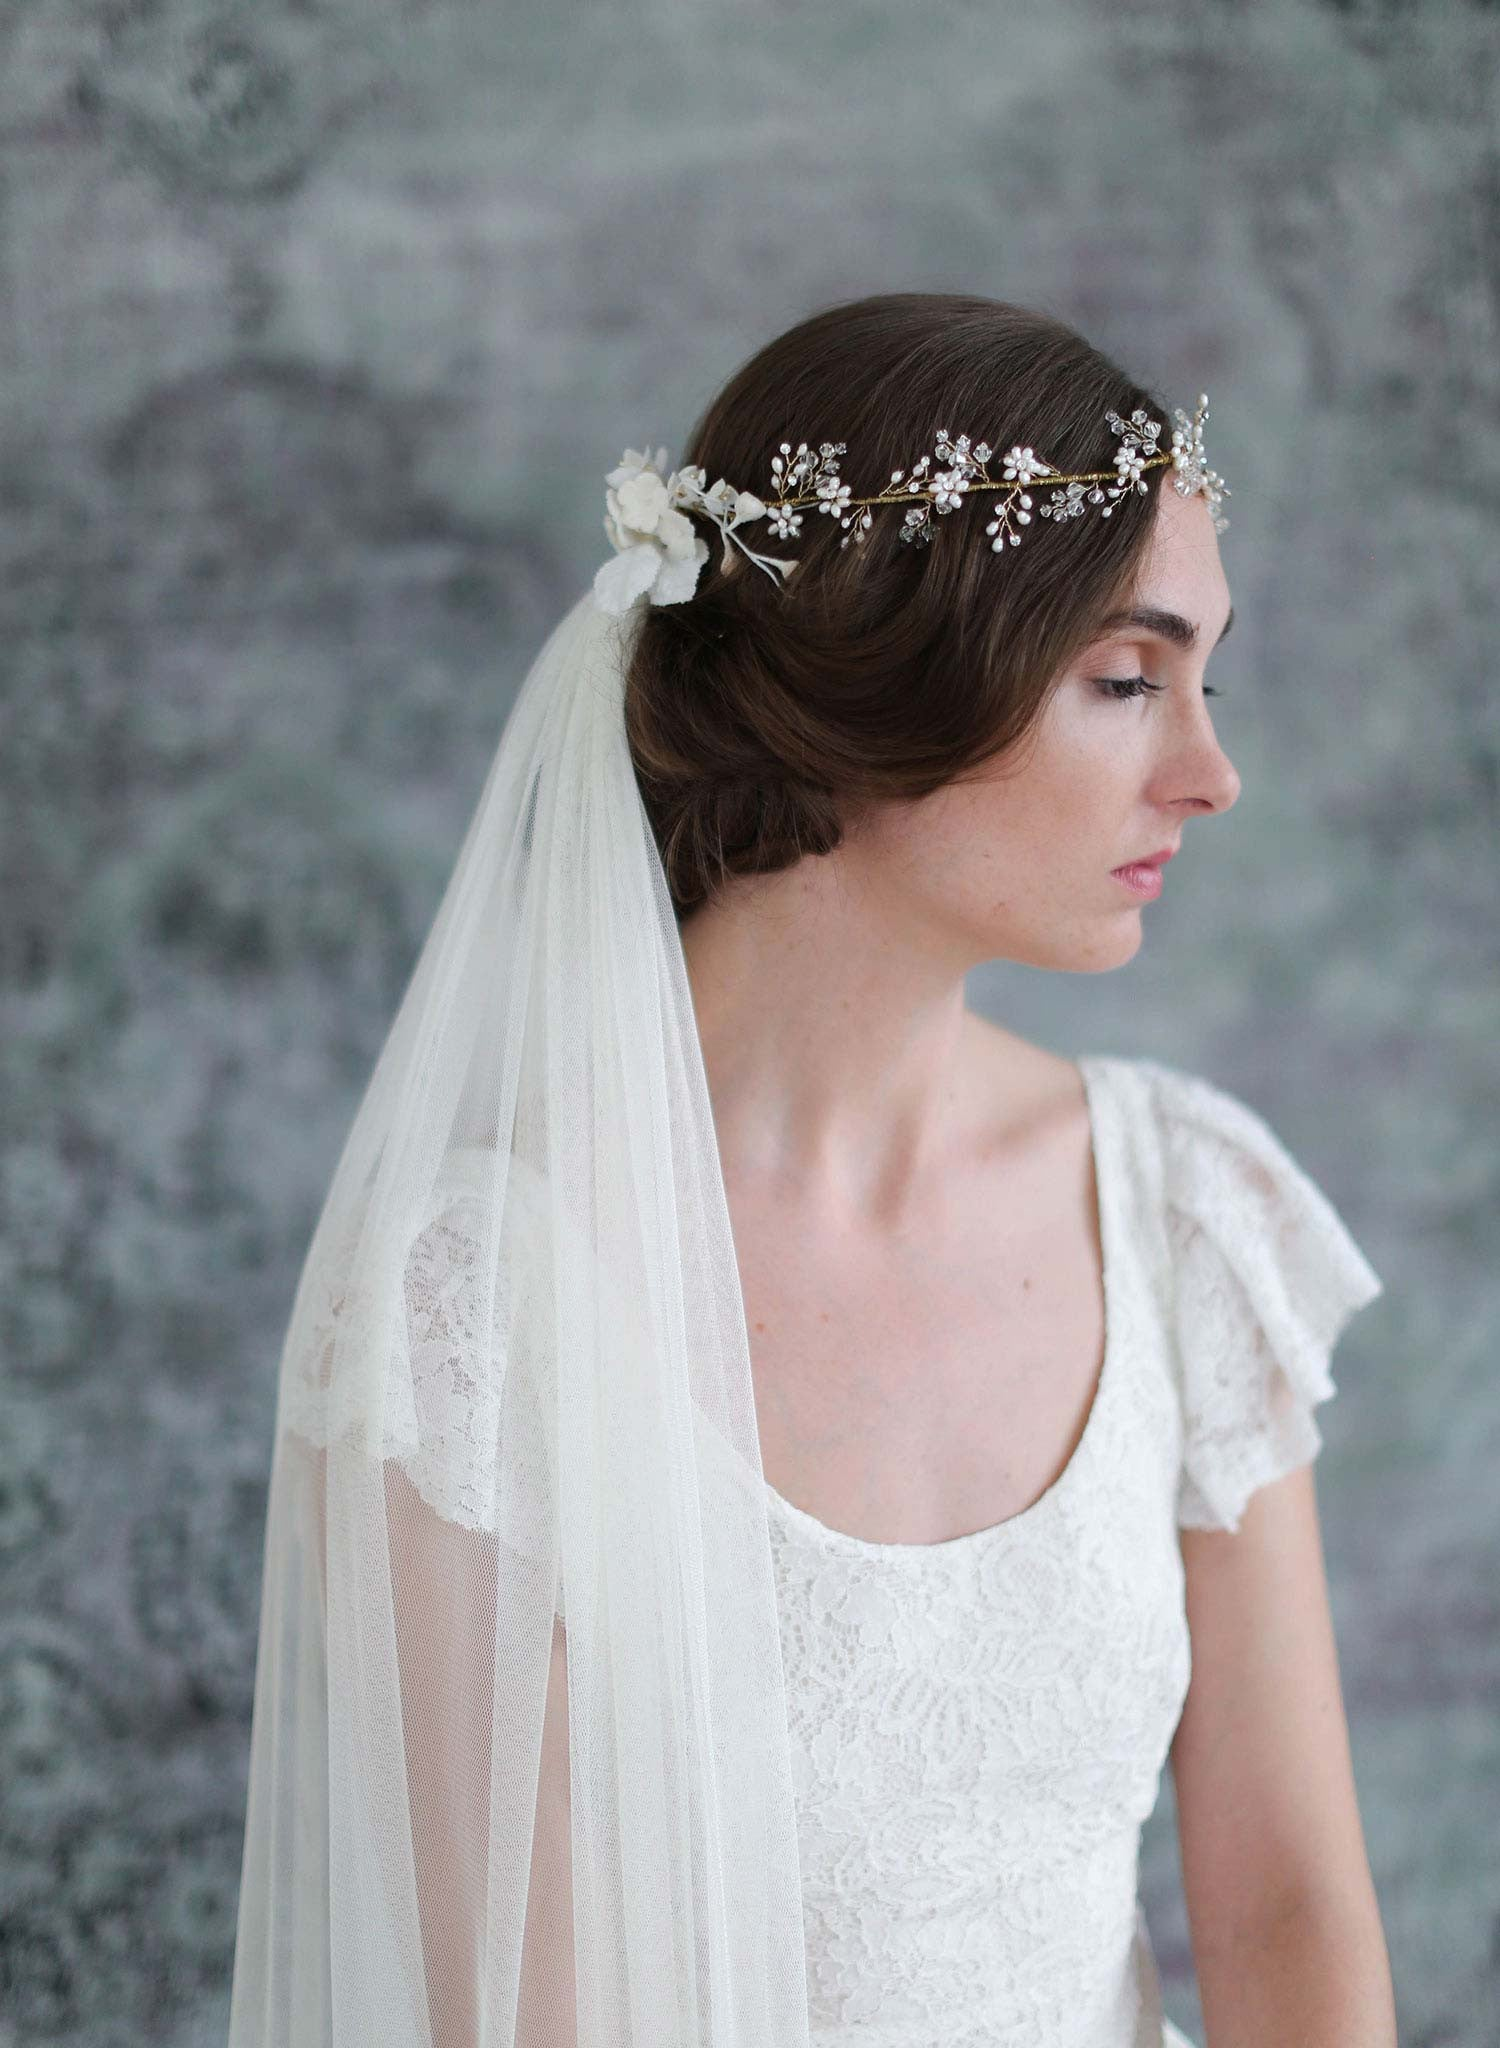 Bridal Crown Veil Crystal And Blossom Full Crown Lux Train Veil